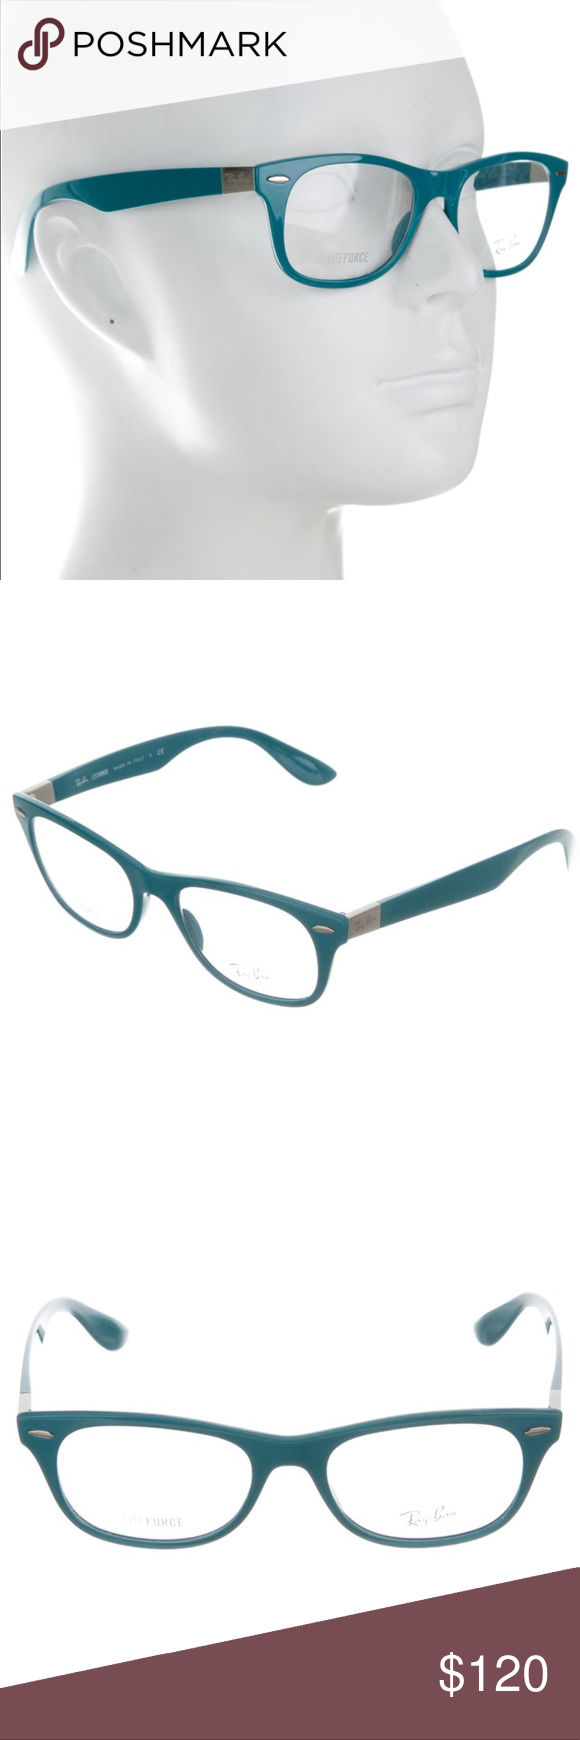 939d0bc9ff416 Ray-Ban Liteforce blue wayfarer eyeglasses Blue turquoise Ray-Ban square  shaped Liteforce eyeglasses with silver-tone hardware.